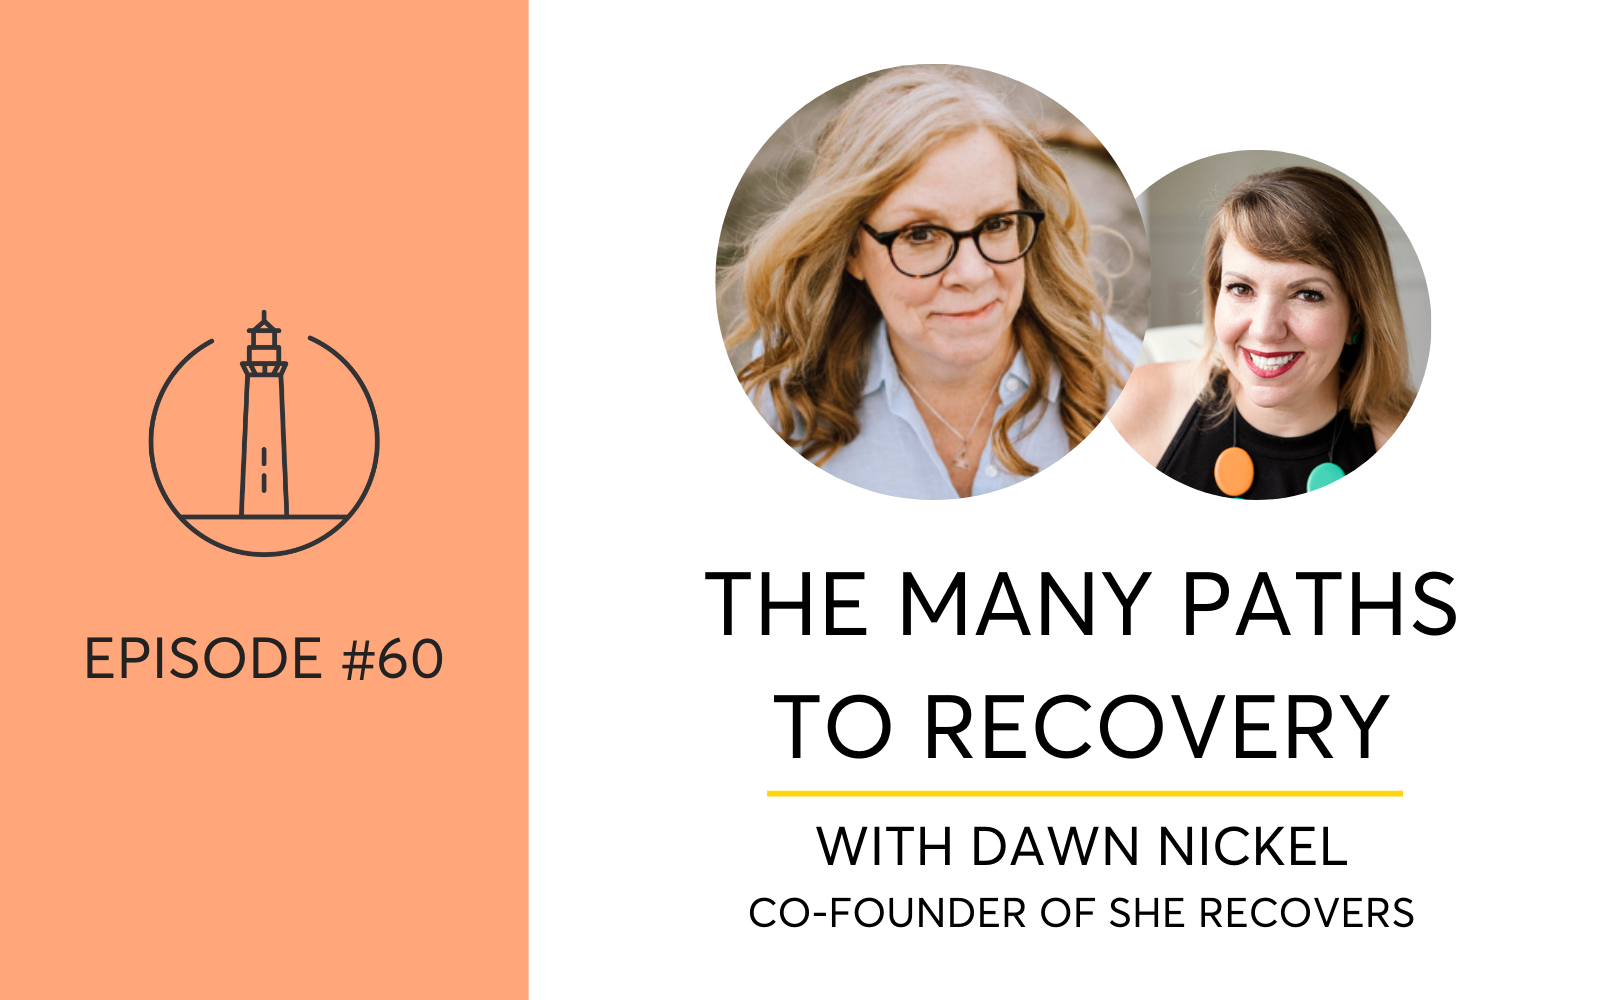 She Recovers and the many pathways to recovery